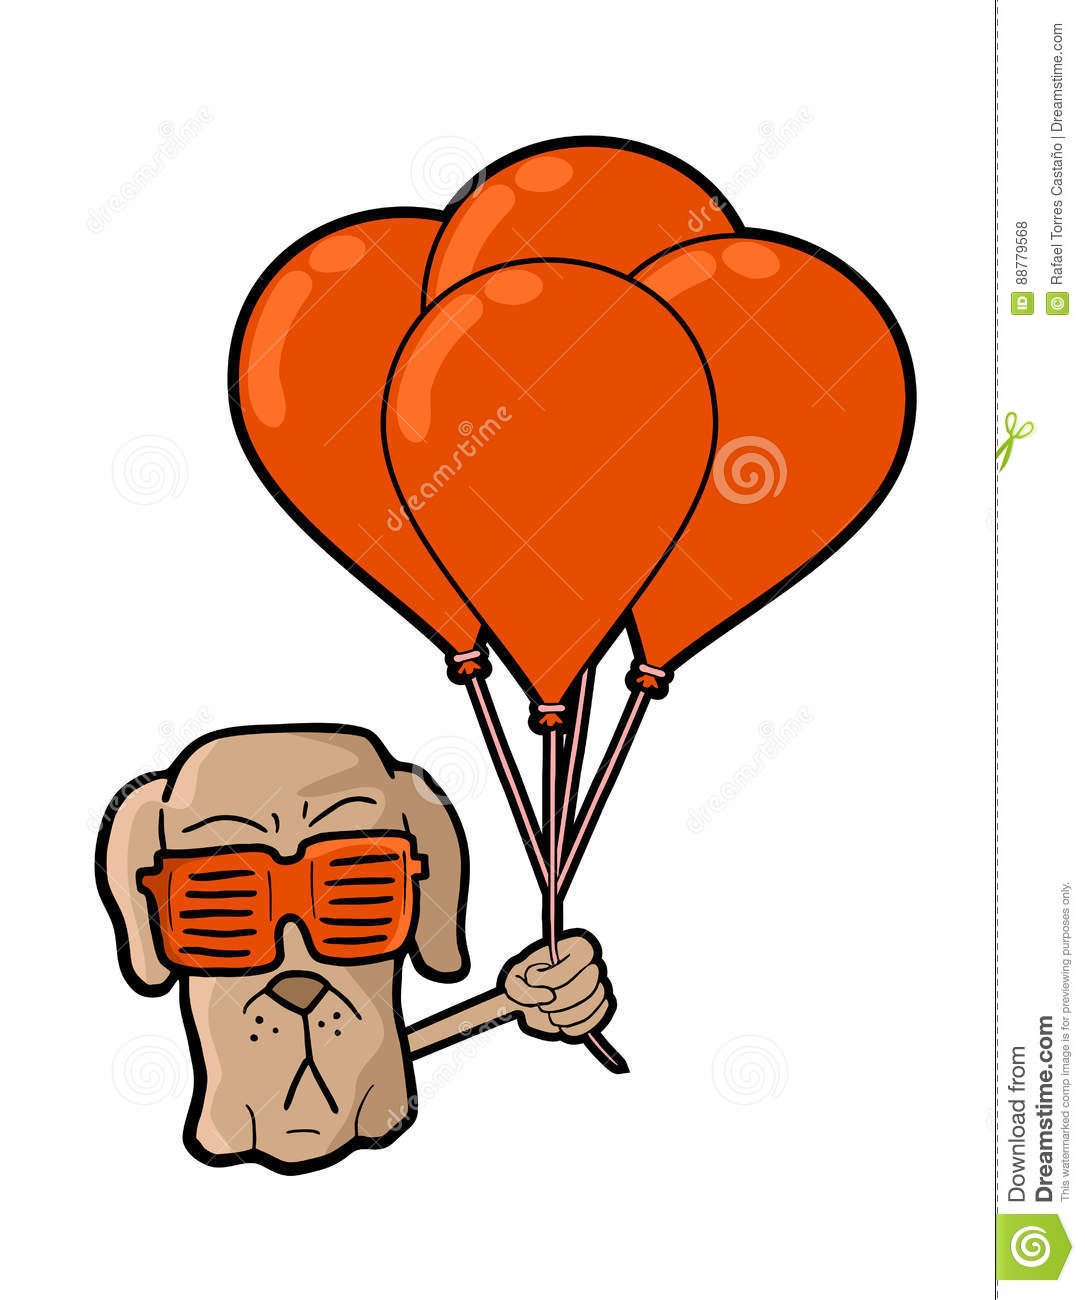 Dog Face With Red Balloons Stock Vector - Image: 88779568